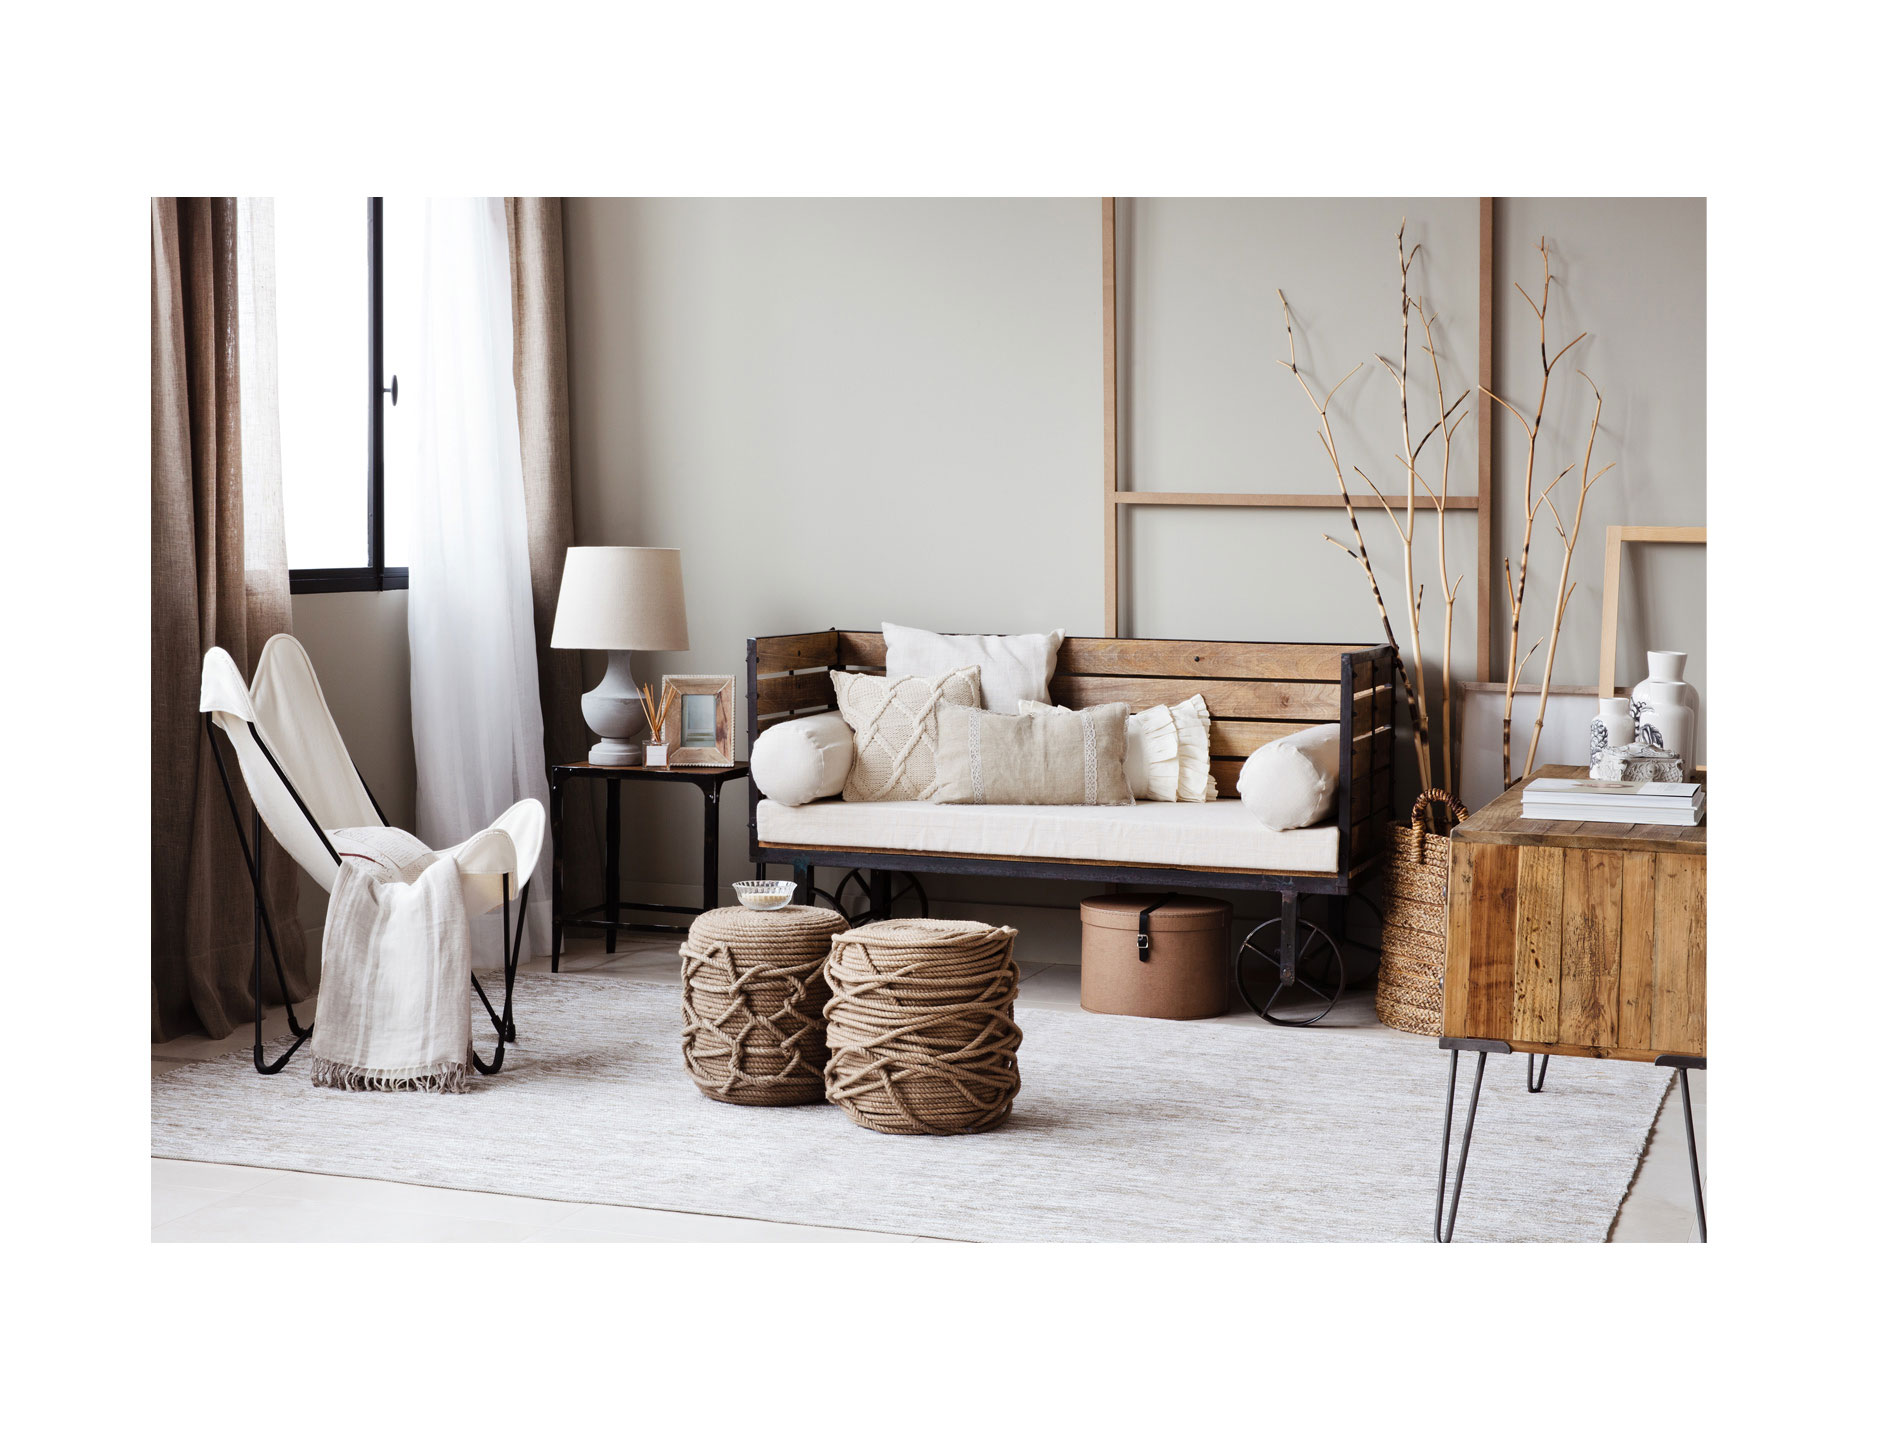 zara home, lookbook, living room